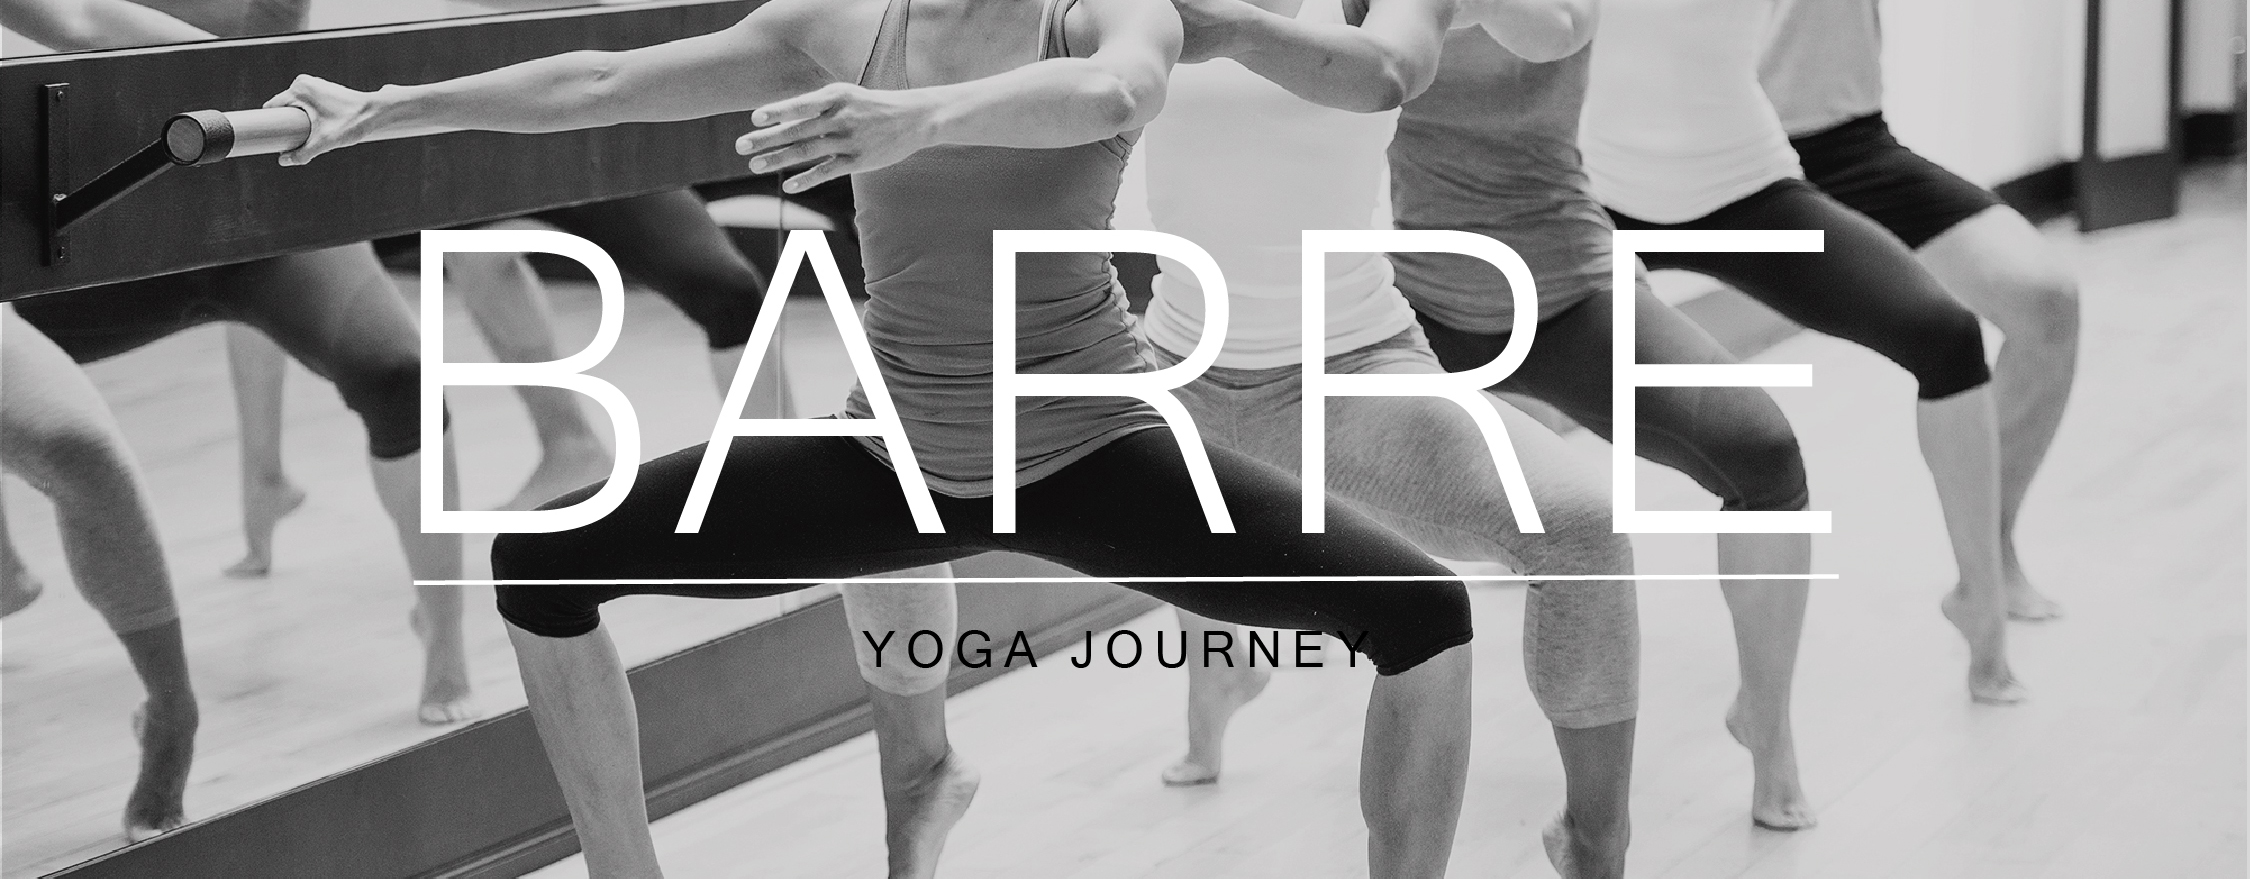 Yoga Journey BARRE